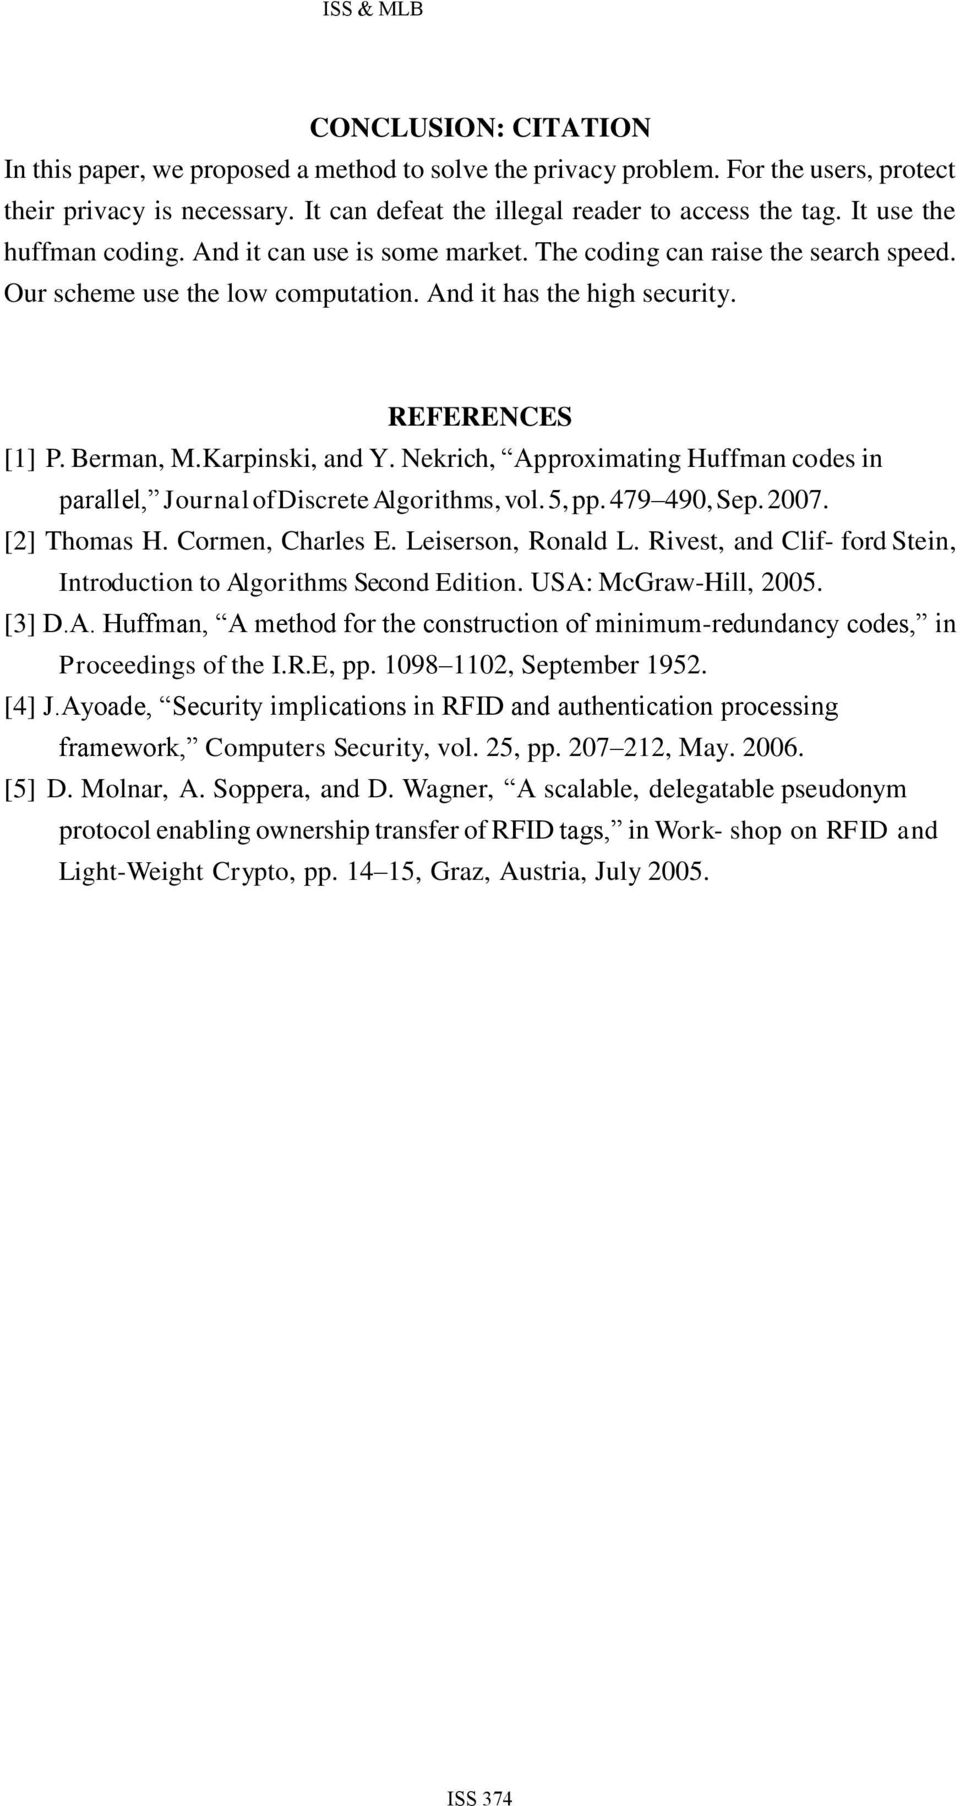 Karpinski, and Y. Nekrich, Approximating Huffman codes in parallel, Journal of Discrete Algorithms, vol. 5, pp. 479 490, Sep. 2007. [2] Thomas H. Cormen, Charles E. Leiserson, Ronald L.